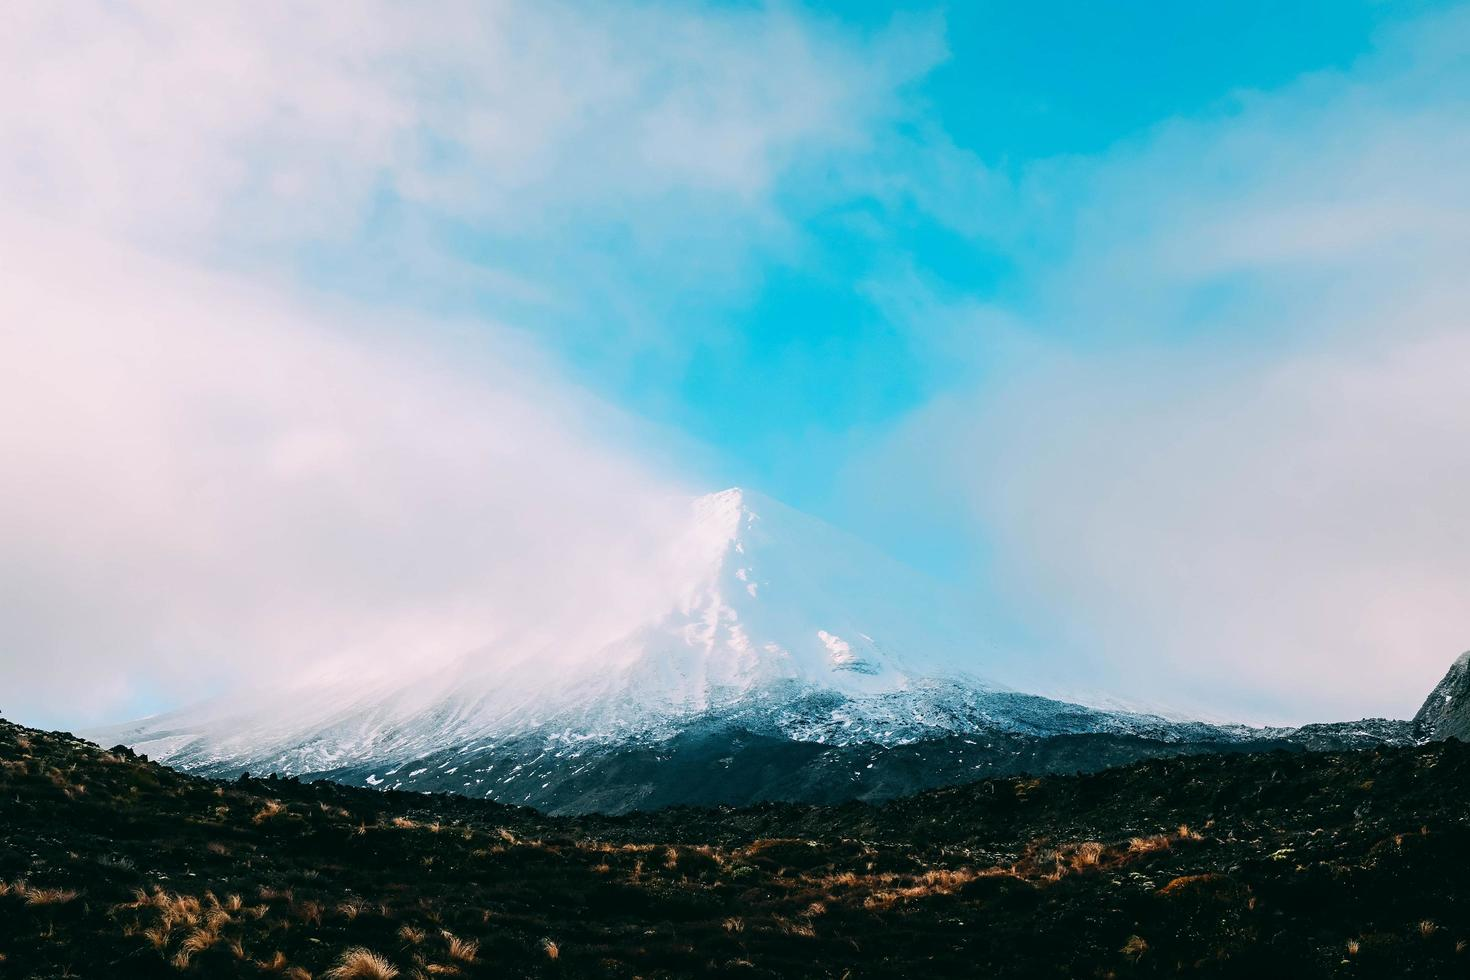 Mountain with cloudy blue sky photo